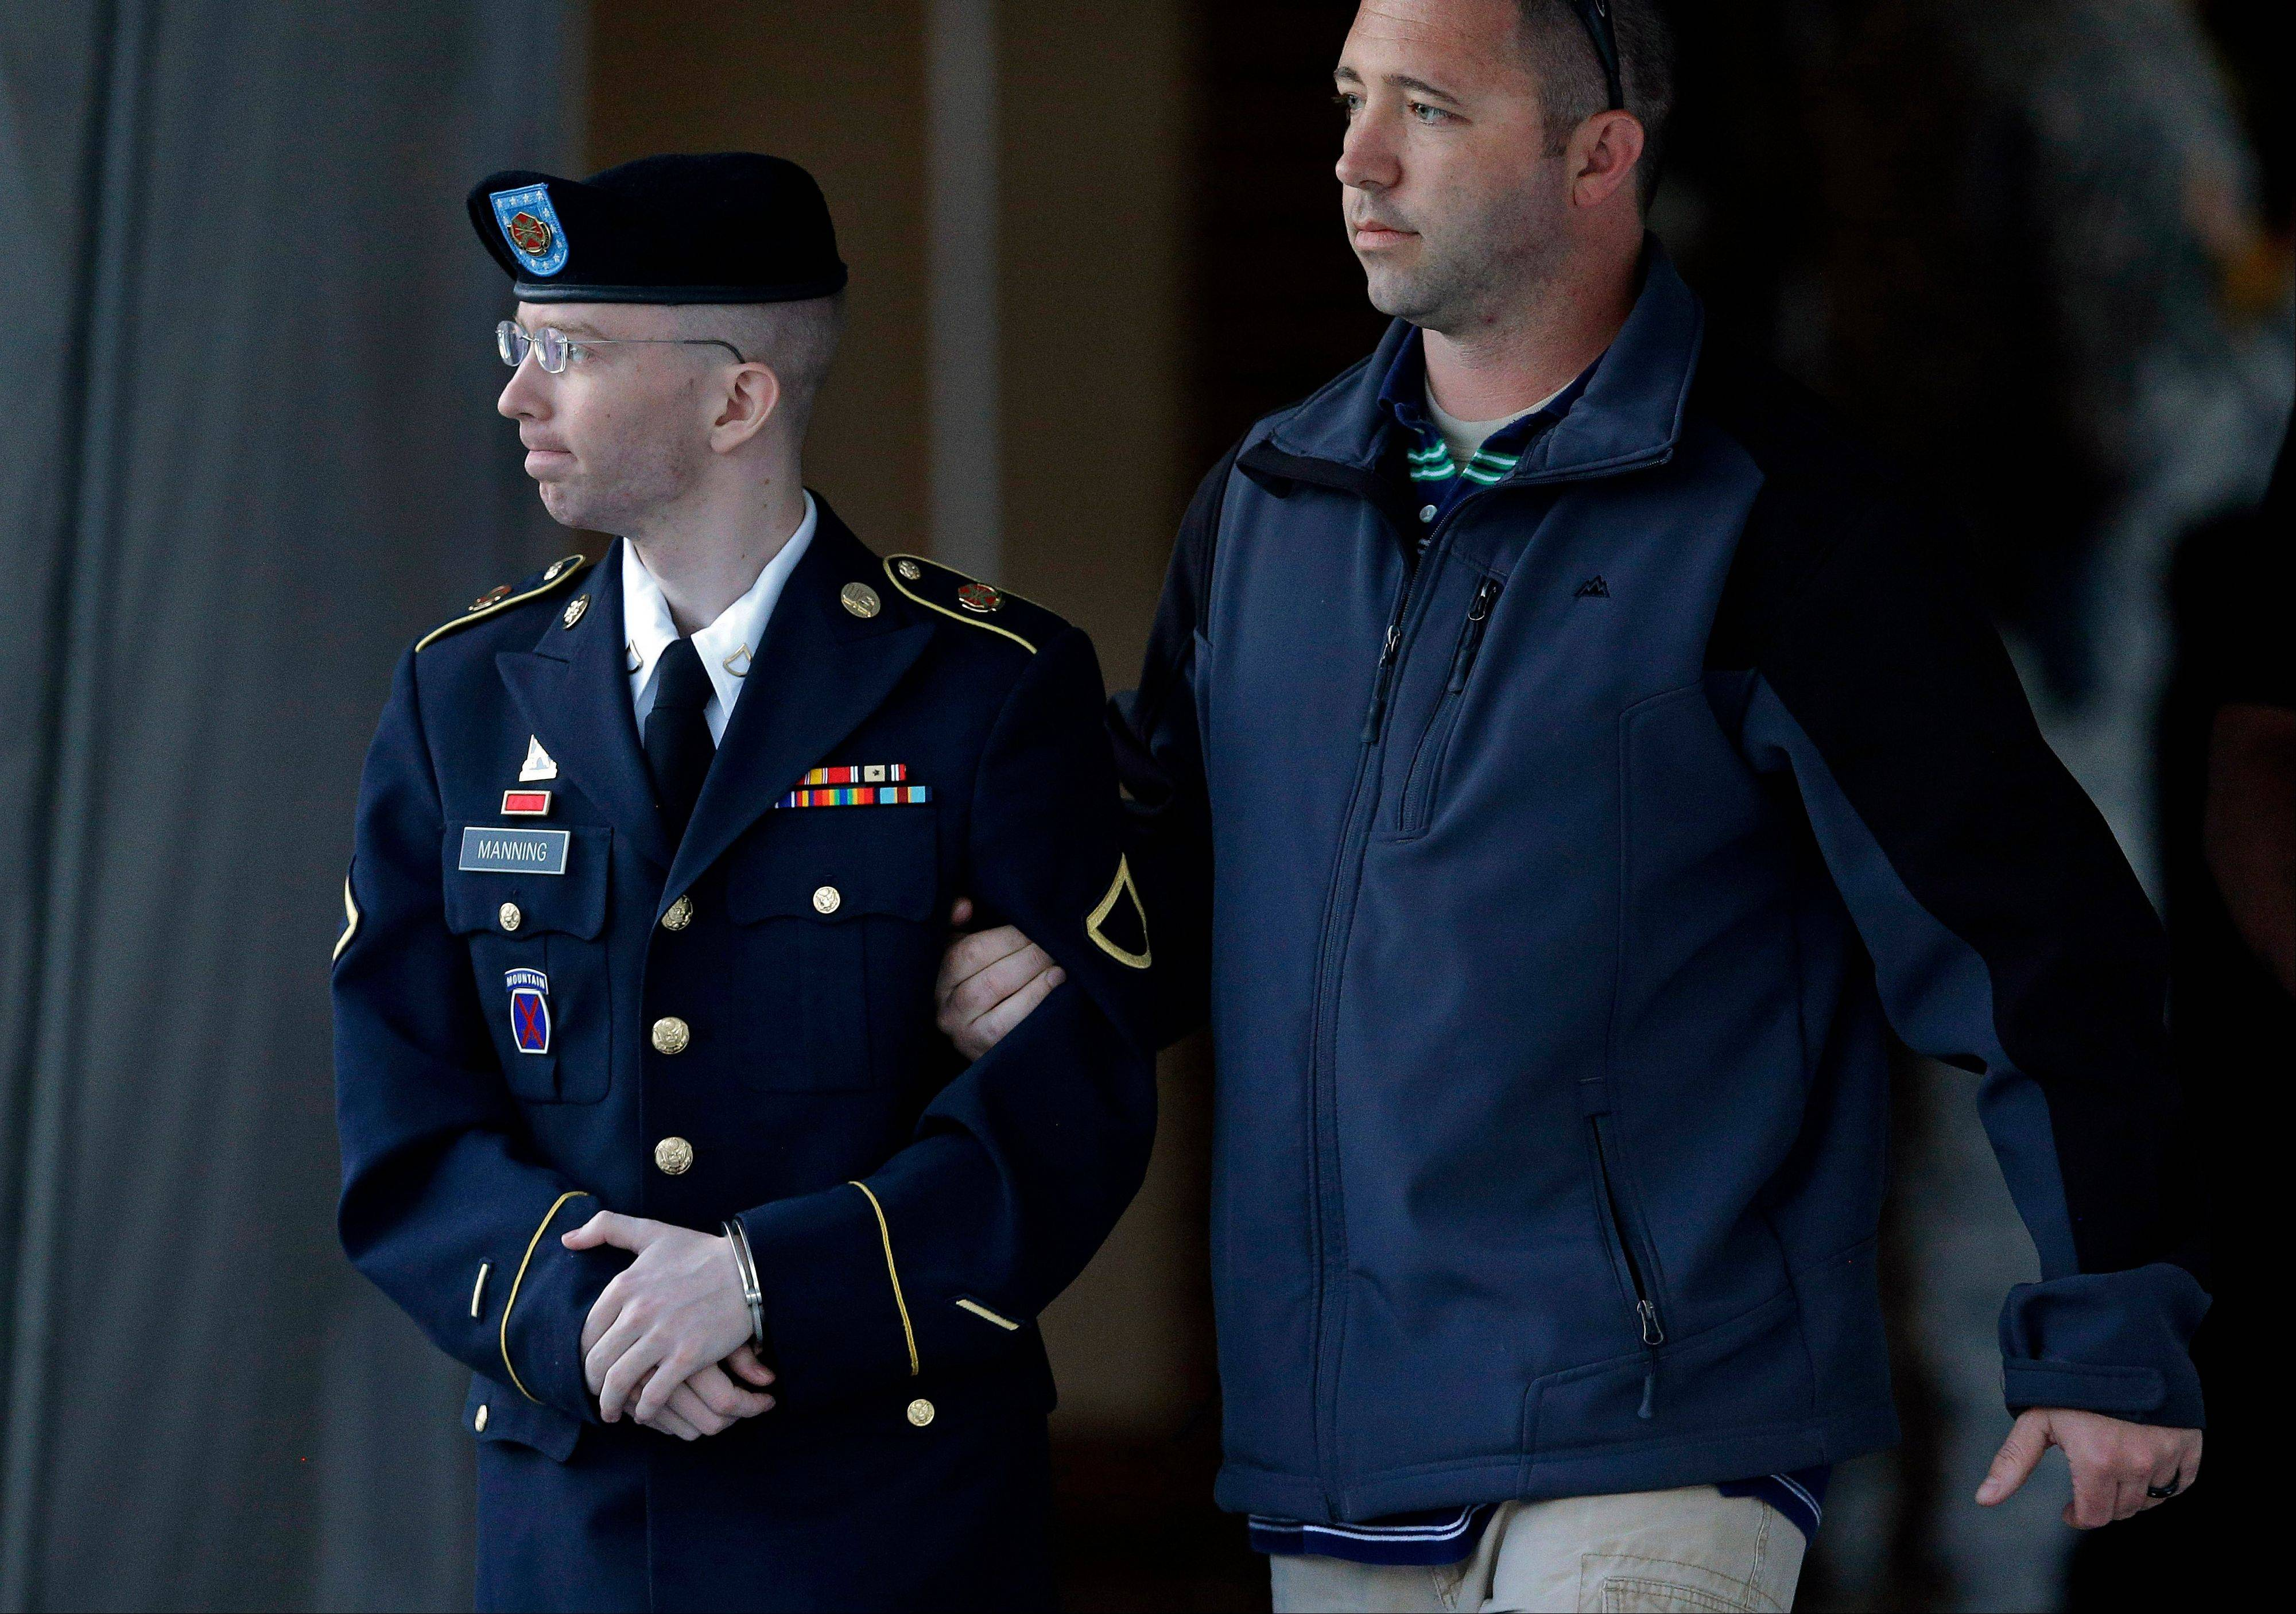 Army Pfc. Bradley Manning, left, is escorted to a security vehicle outside of a courthouse in Fort Meade, Md., Monday, after the third day of deliberations in his court martial. Manning was acquitted of aiding the enemy for giving classified secrets to WikiLeaks.